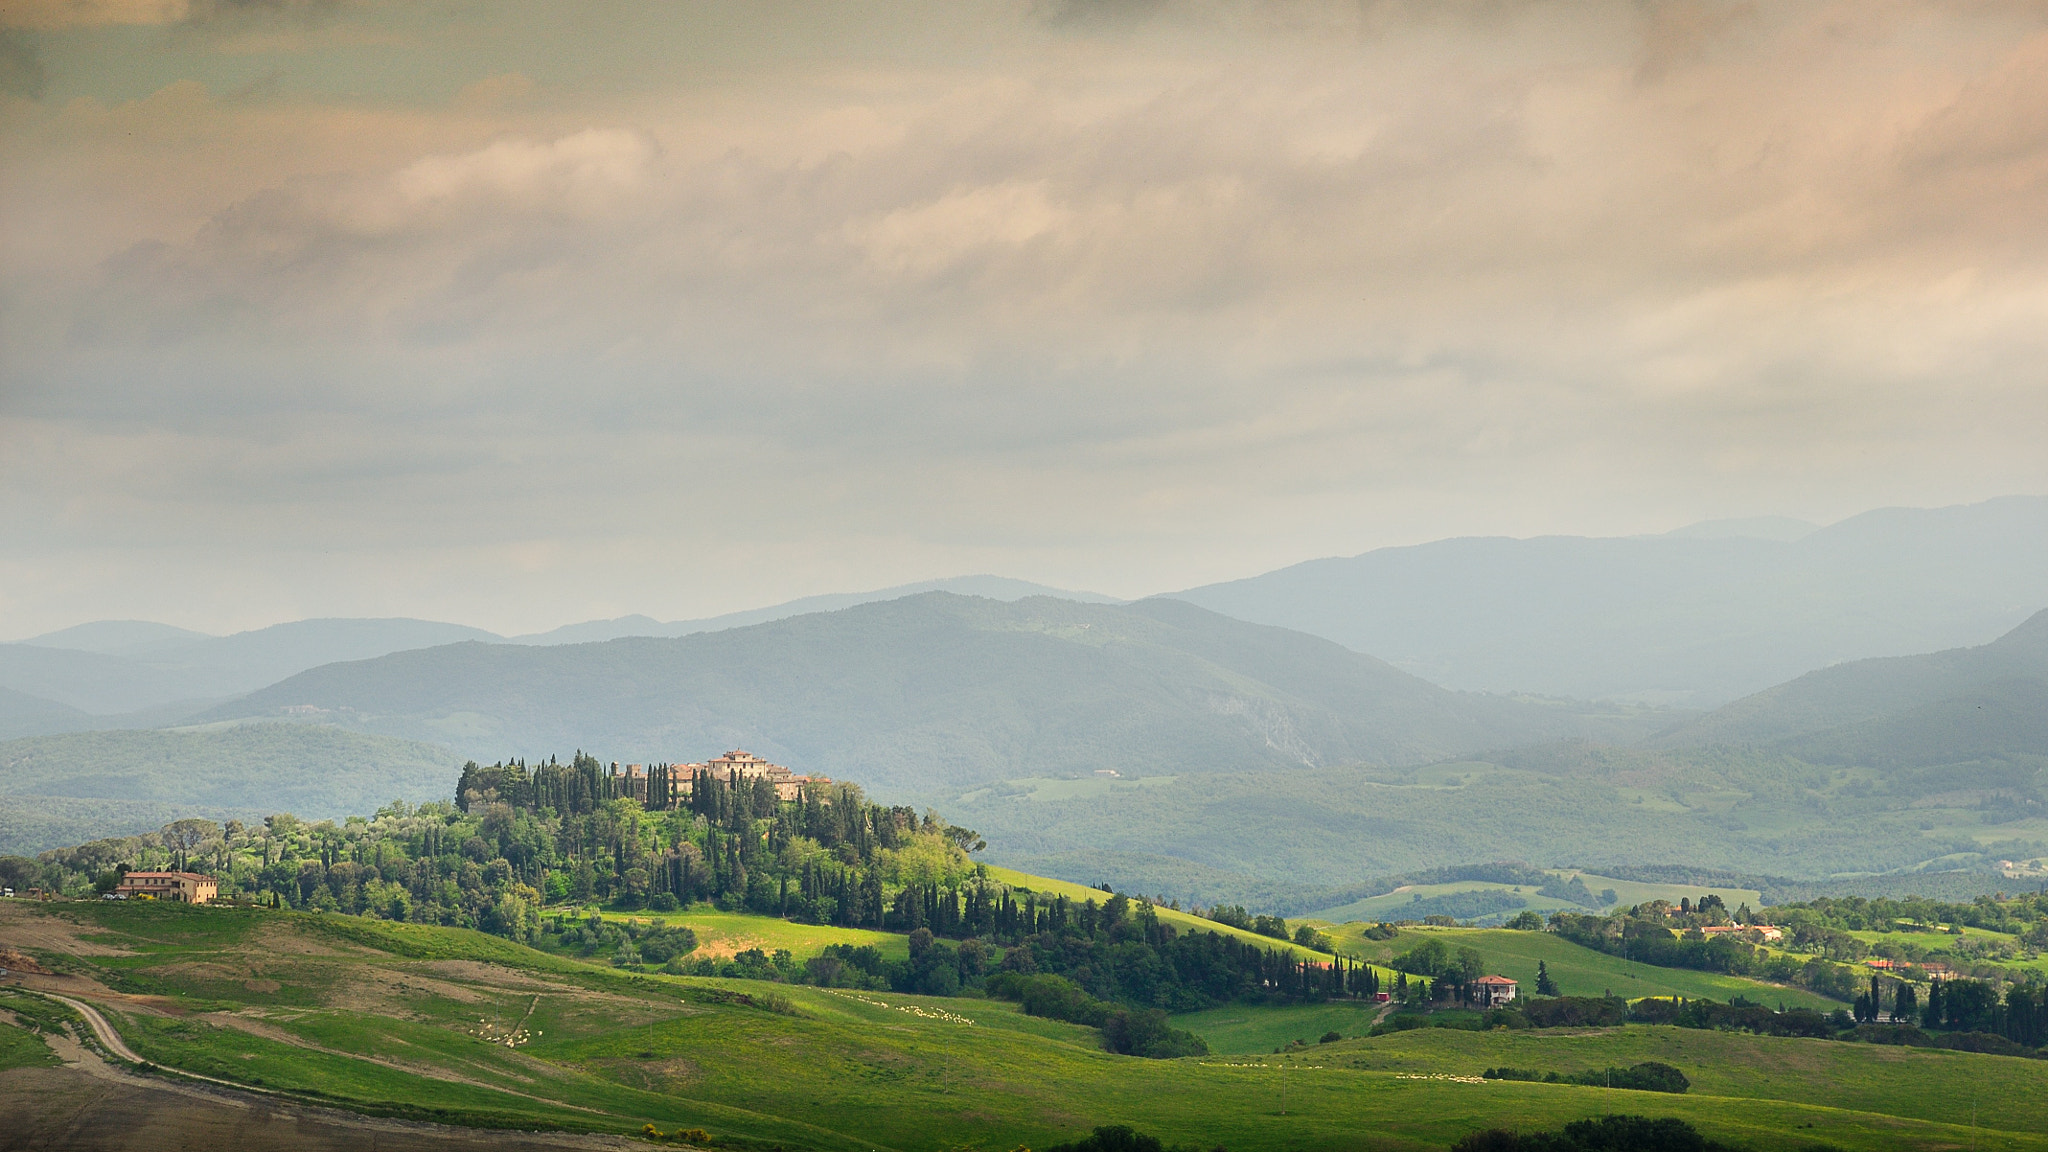 Photograph Tuscany landscape by Rudy Denoyette on 500px